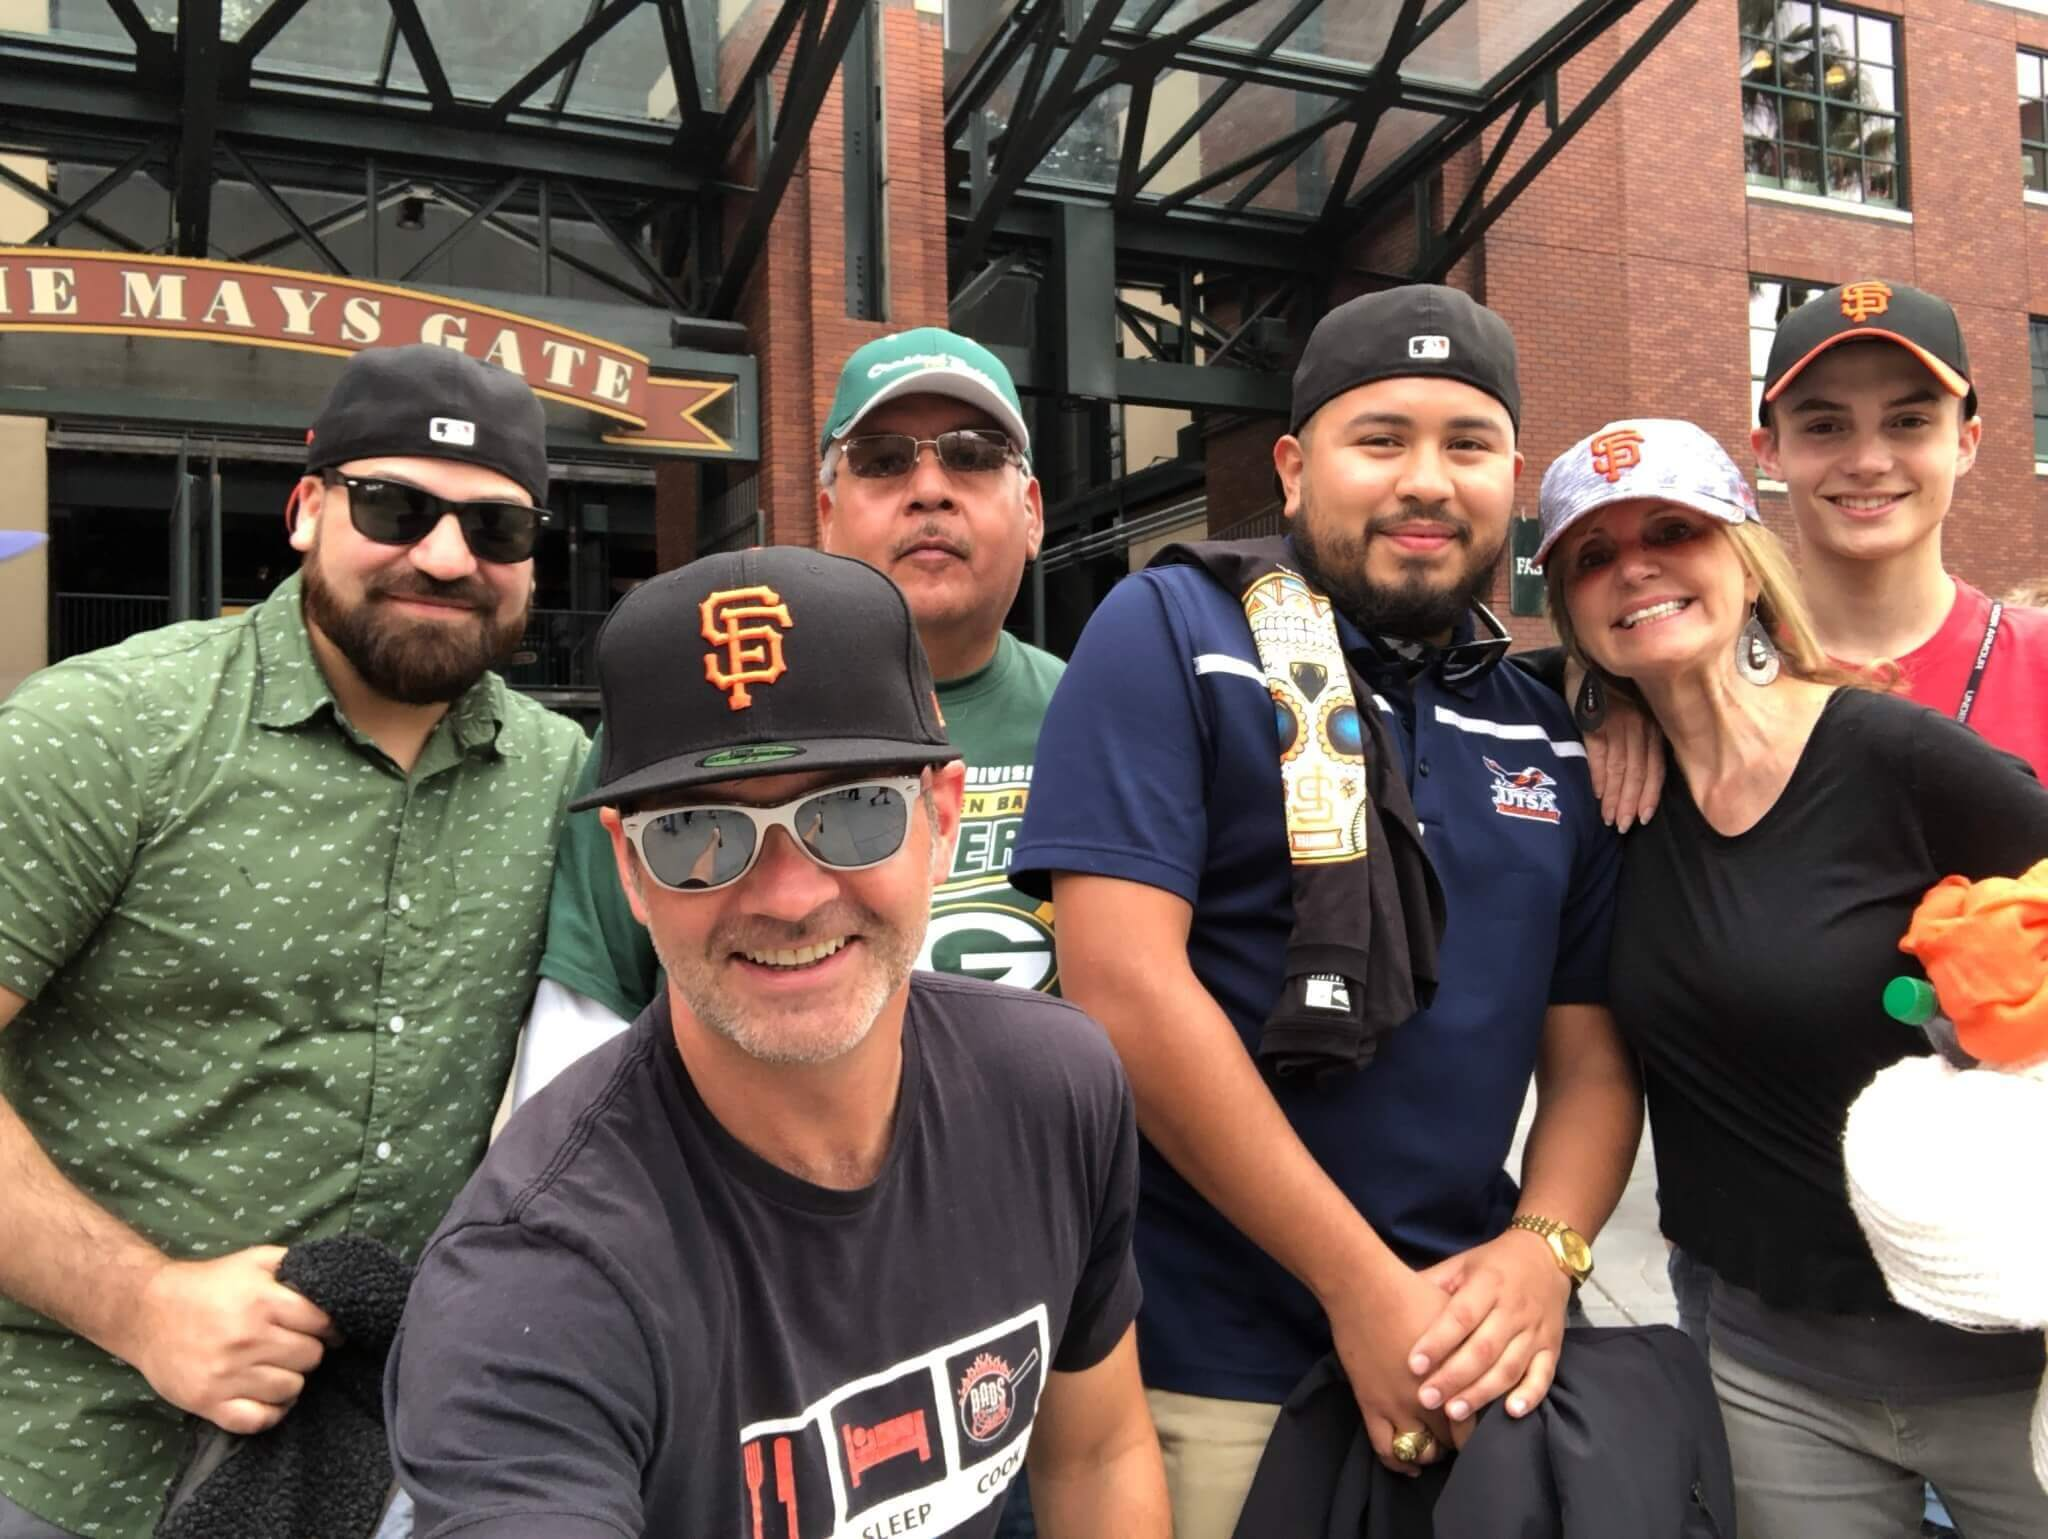 San Francisco Weekend Getaway Winner – Dads That Cook